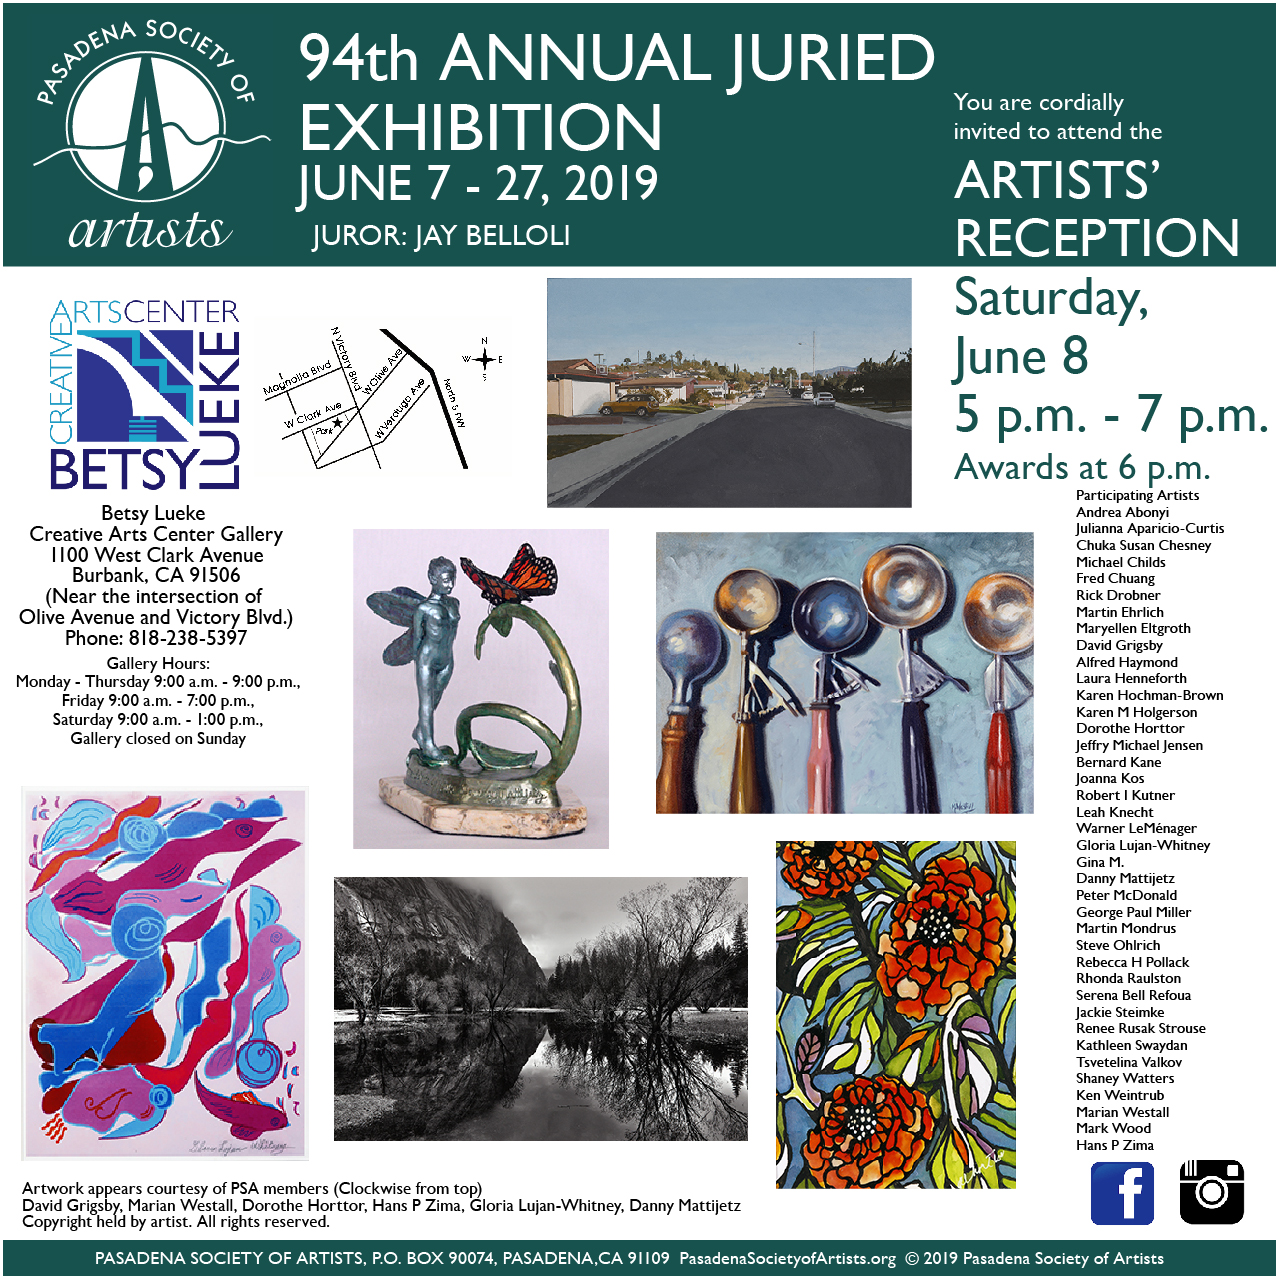 94th Annual Juried Exhibition